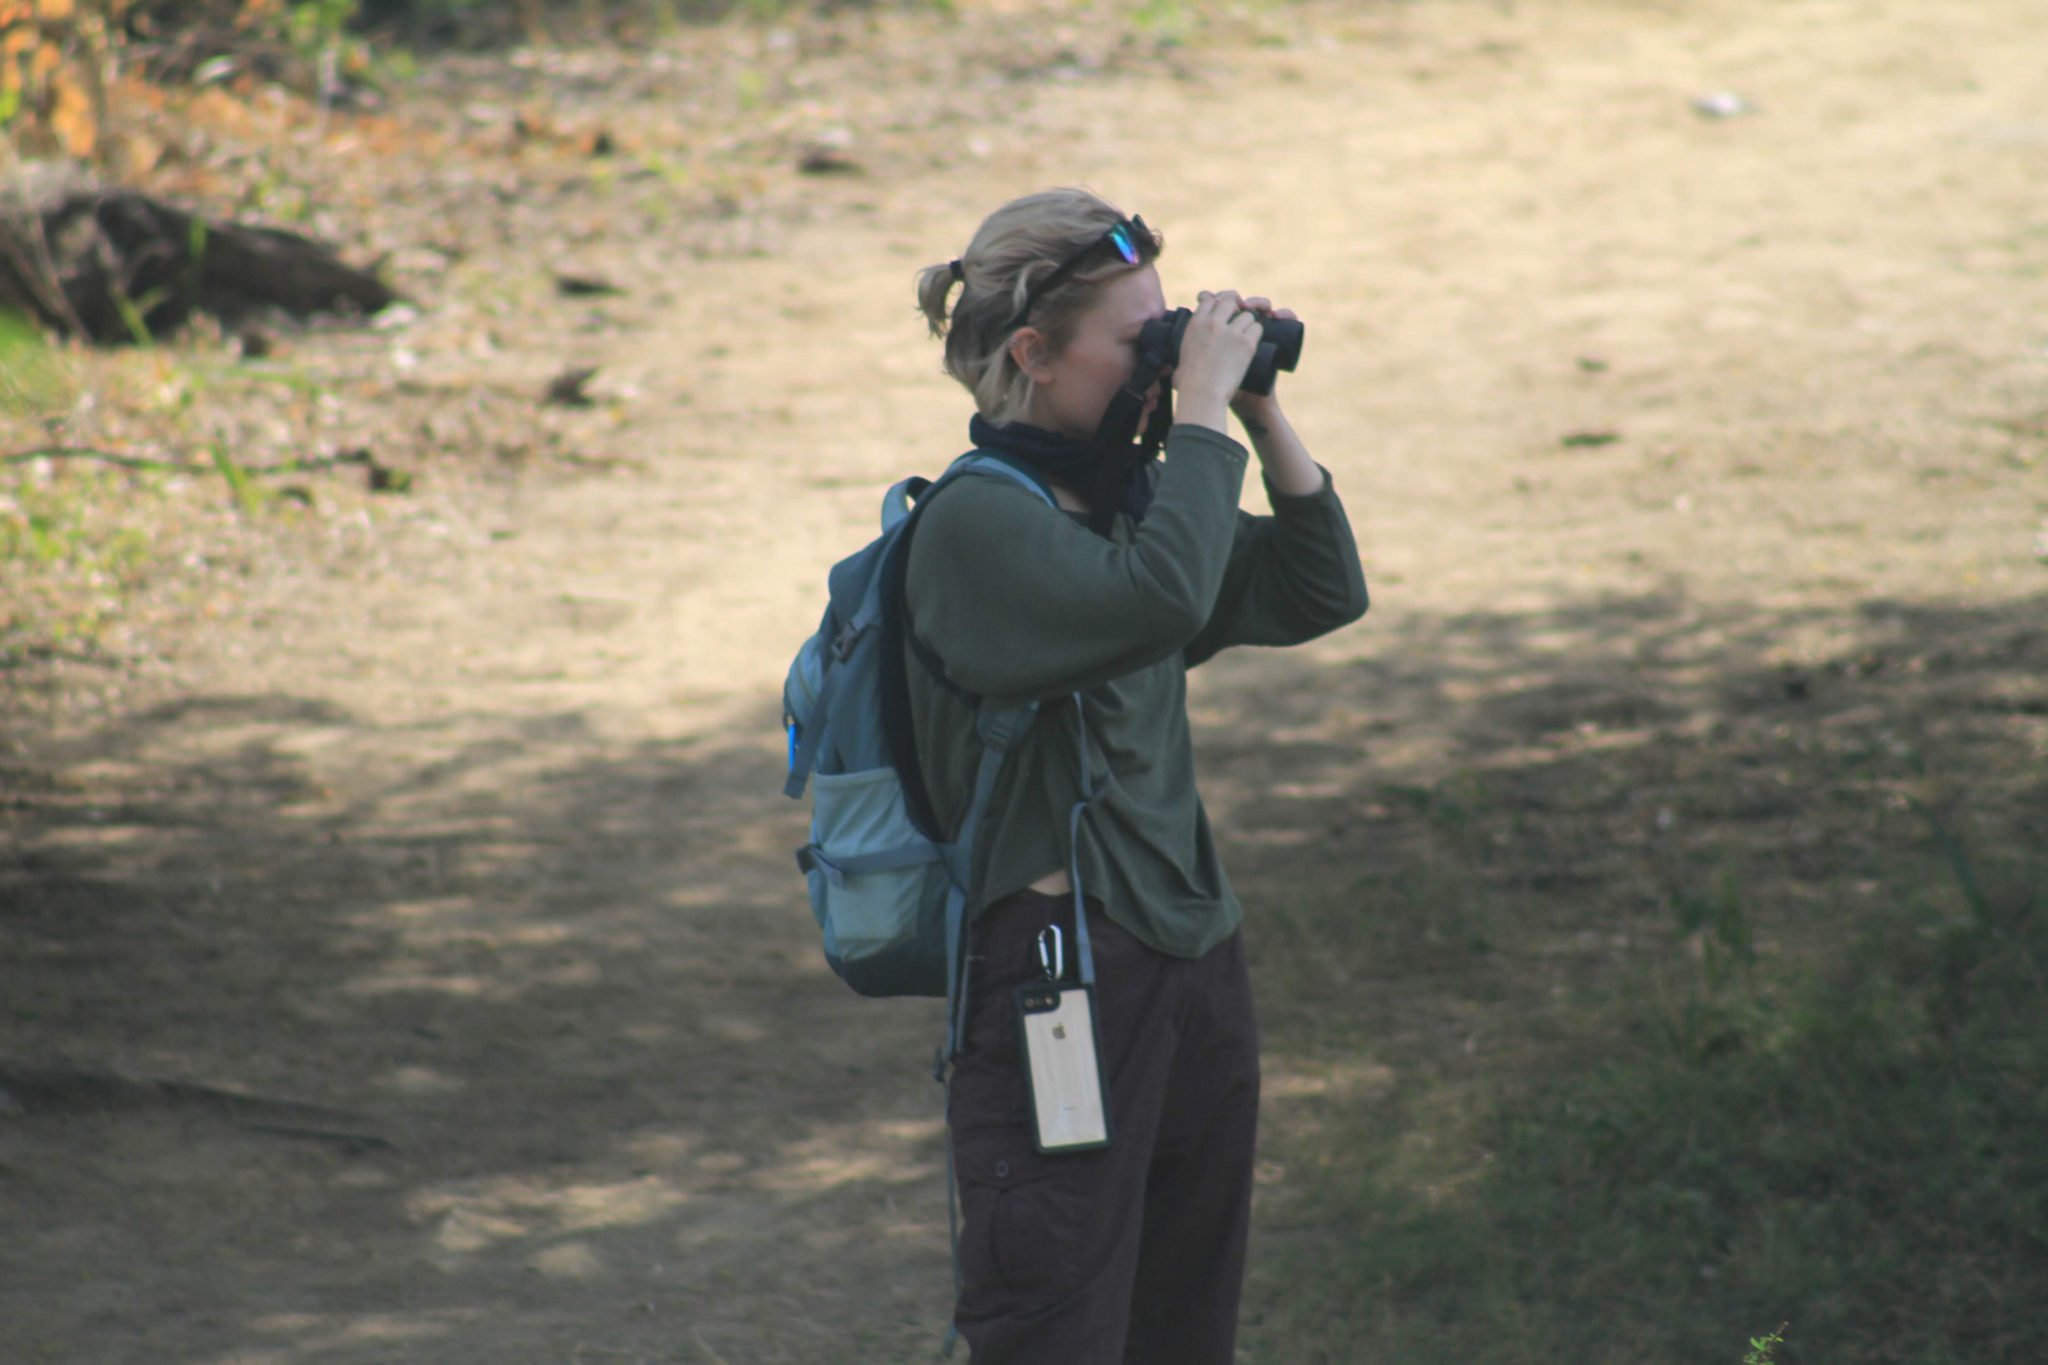 Birdwatching in Keoladeo National Park in India